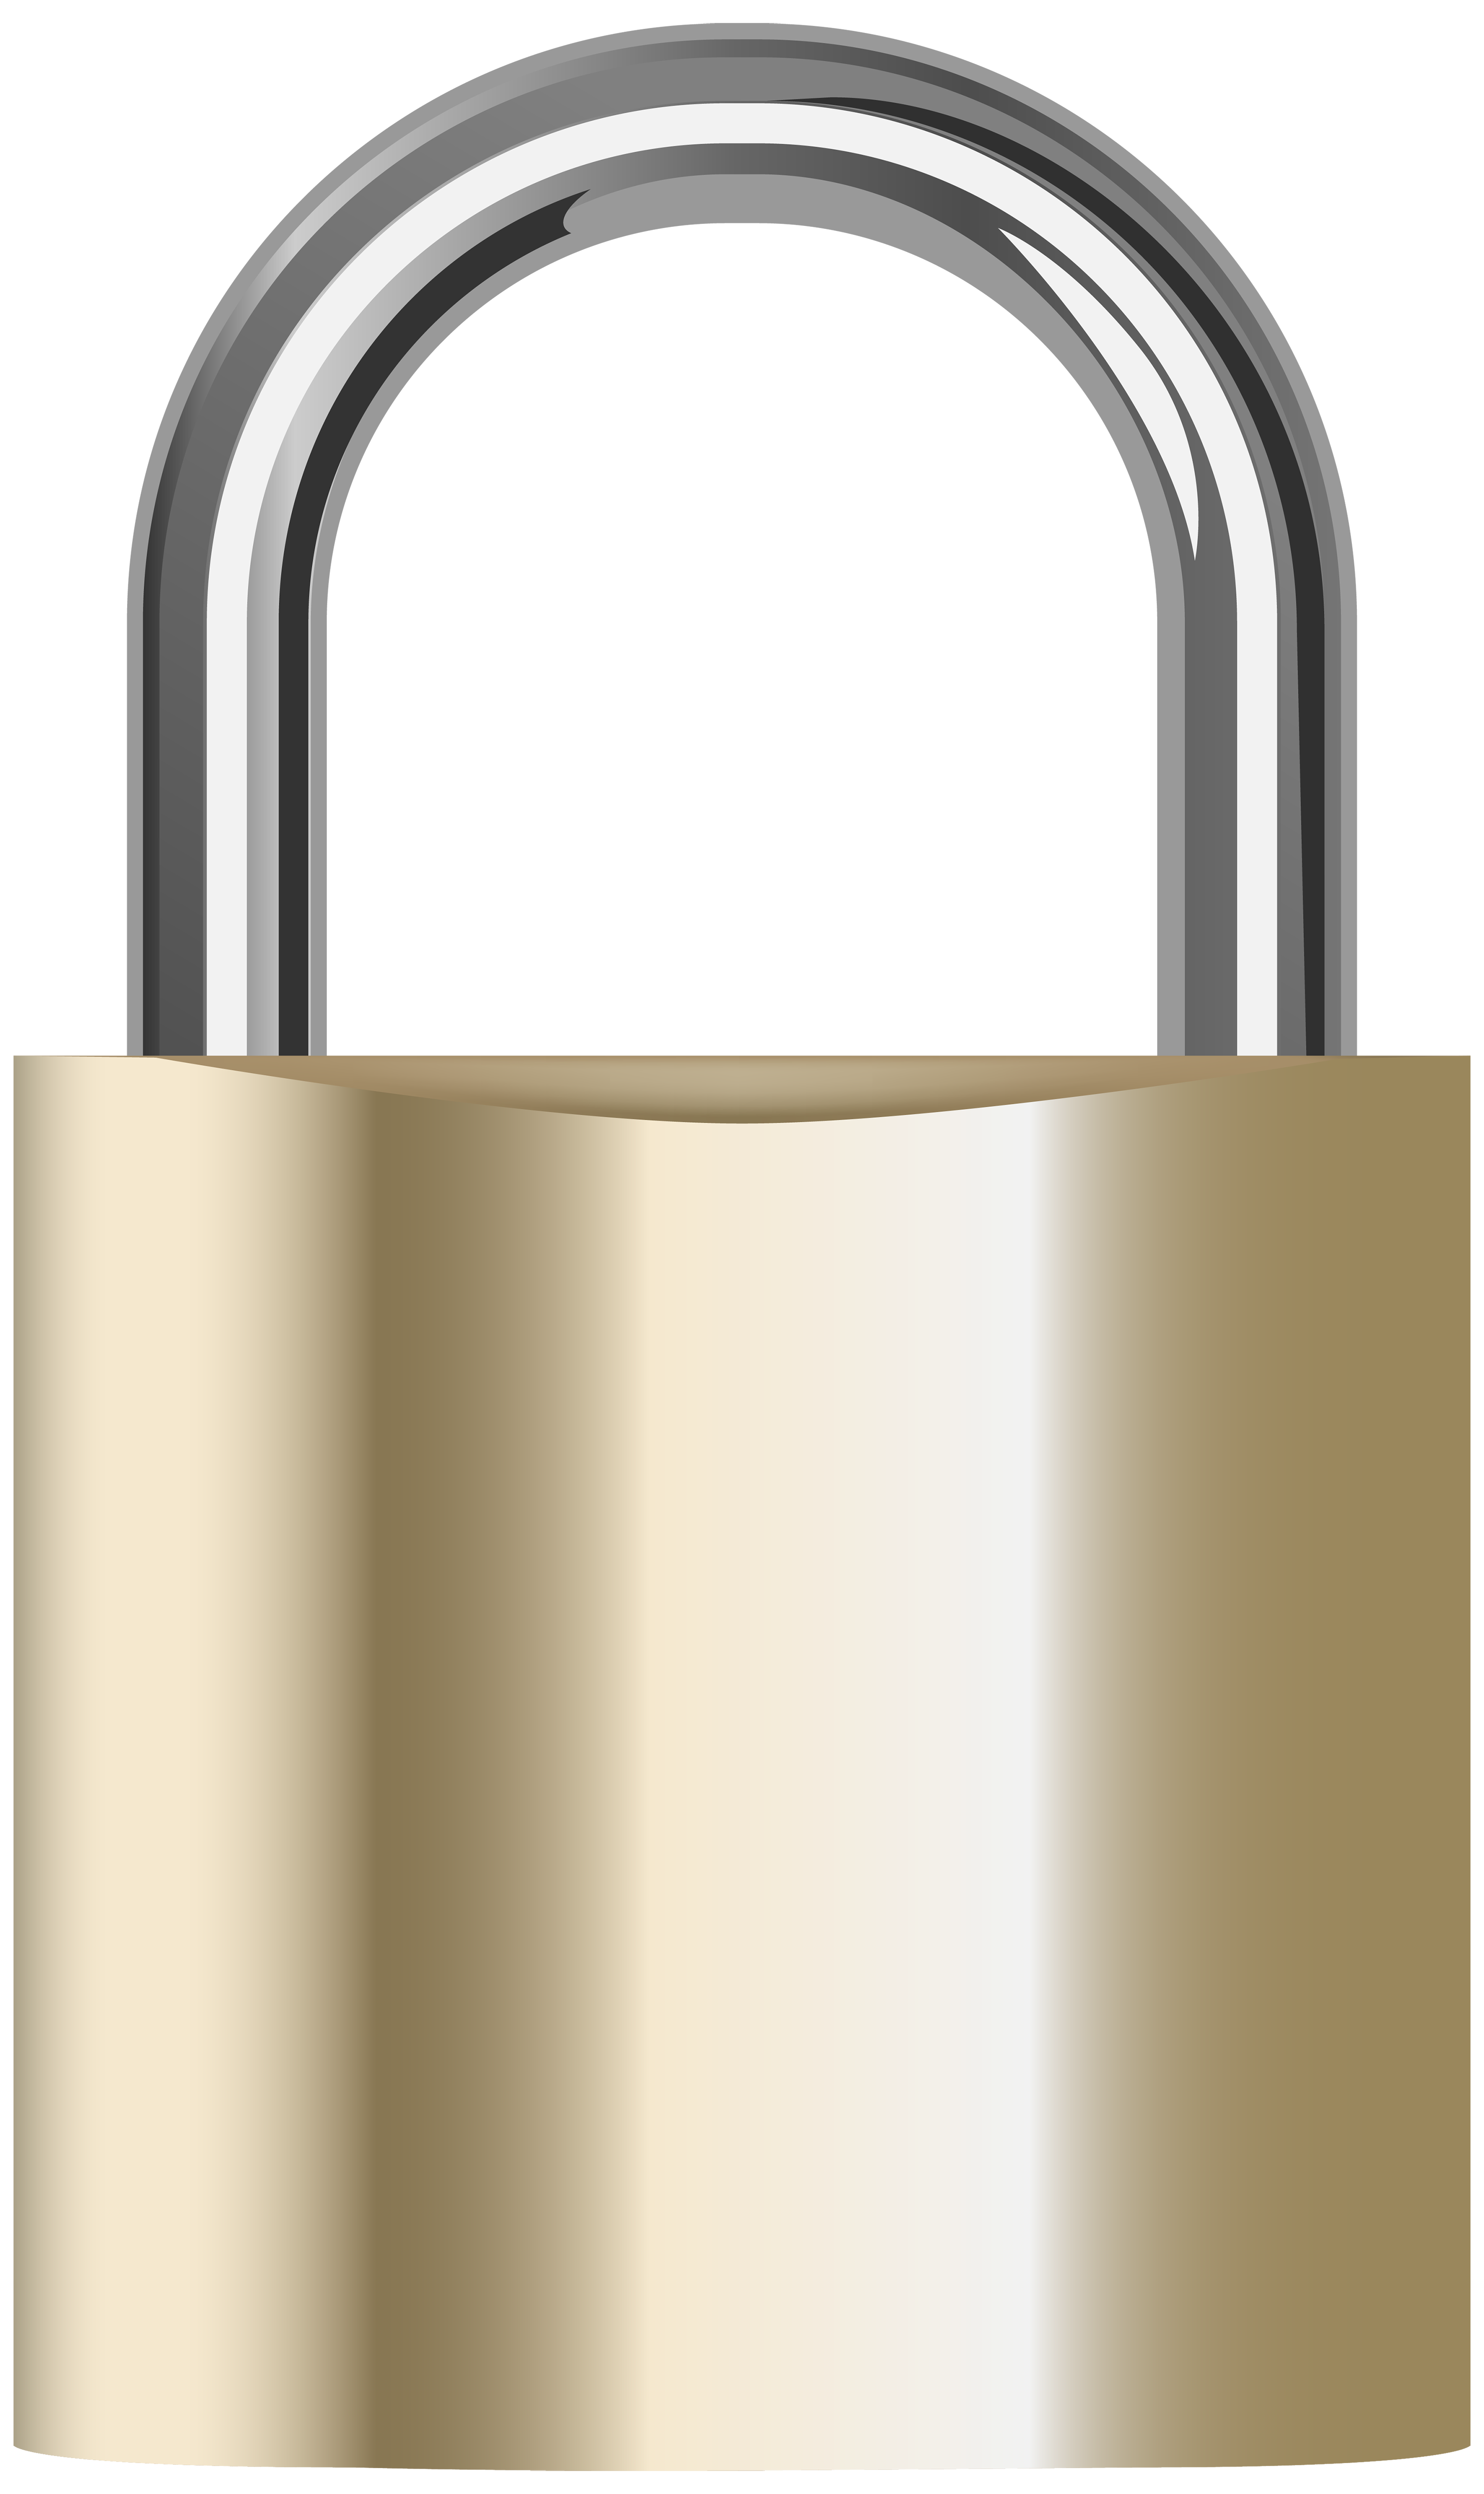 clipart black and white Lock png clip art. Padlock clipart golden